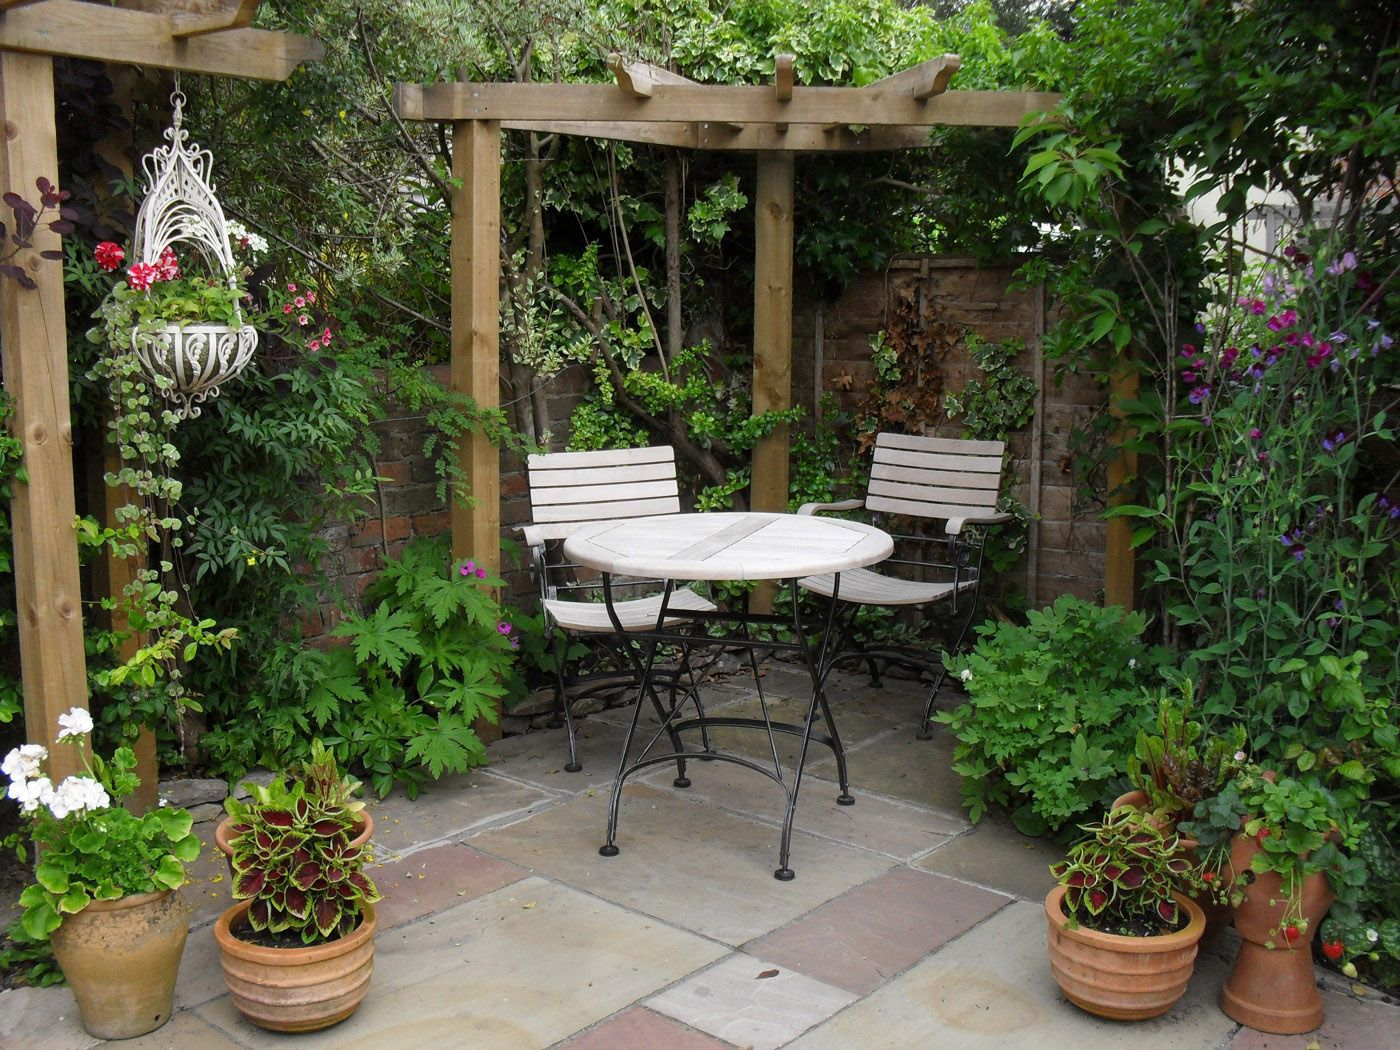 small patio ideas 24 NFQDEET